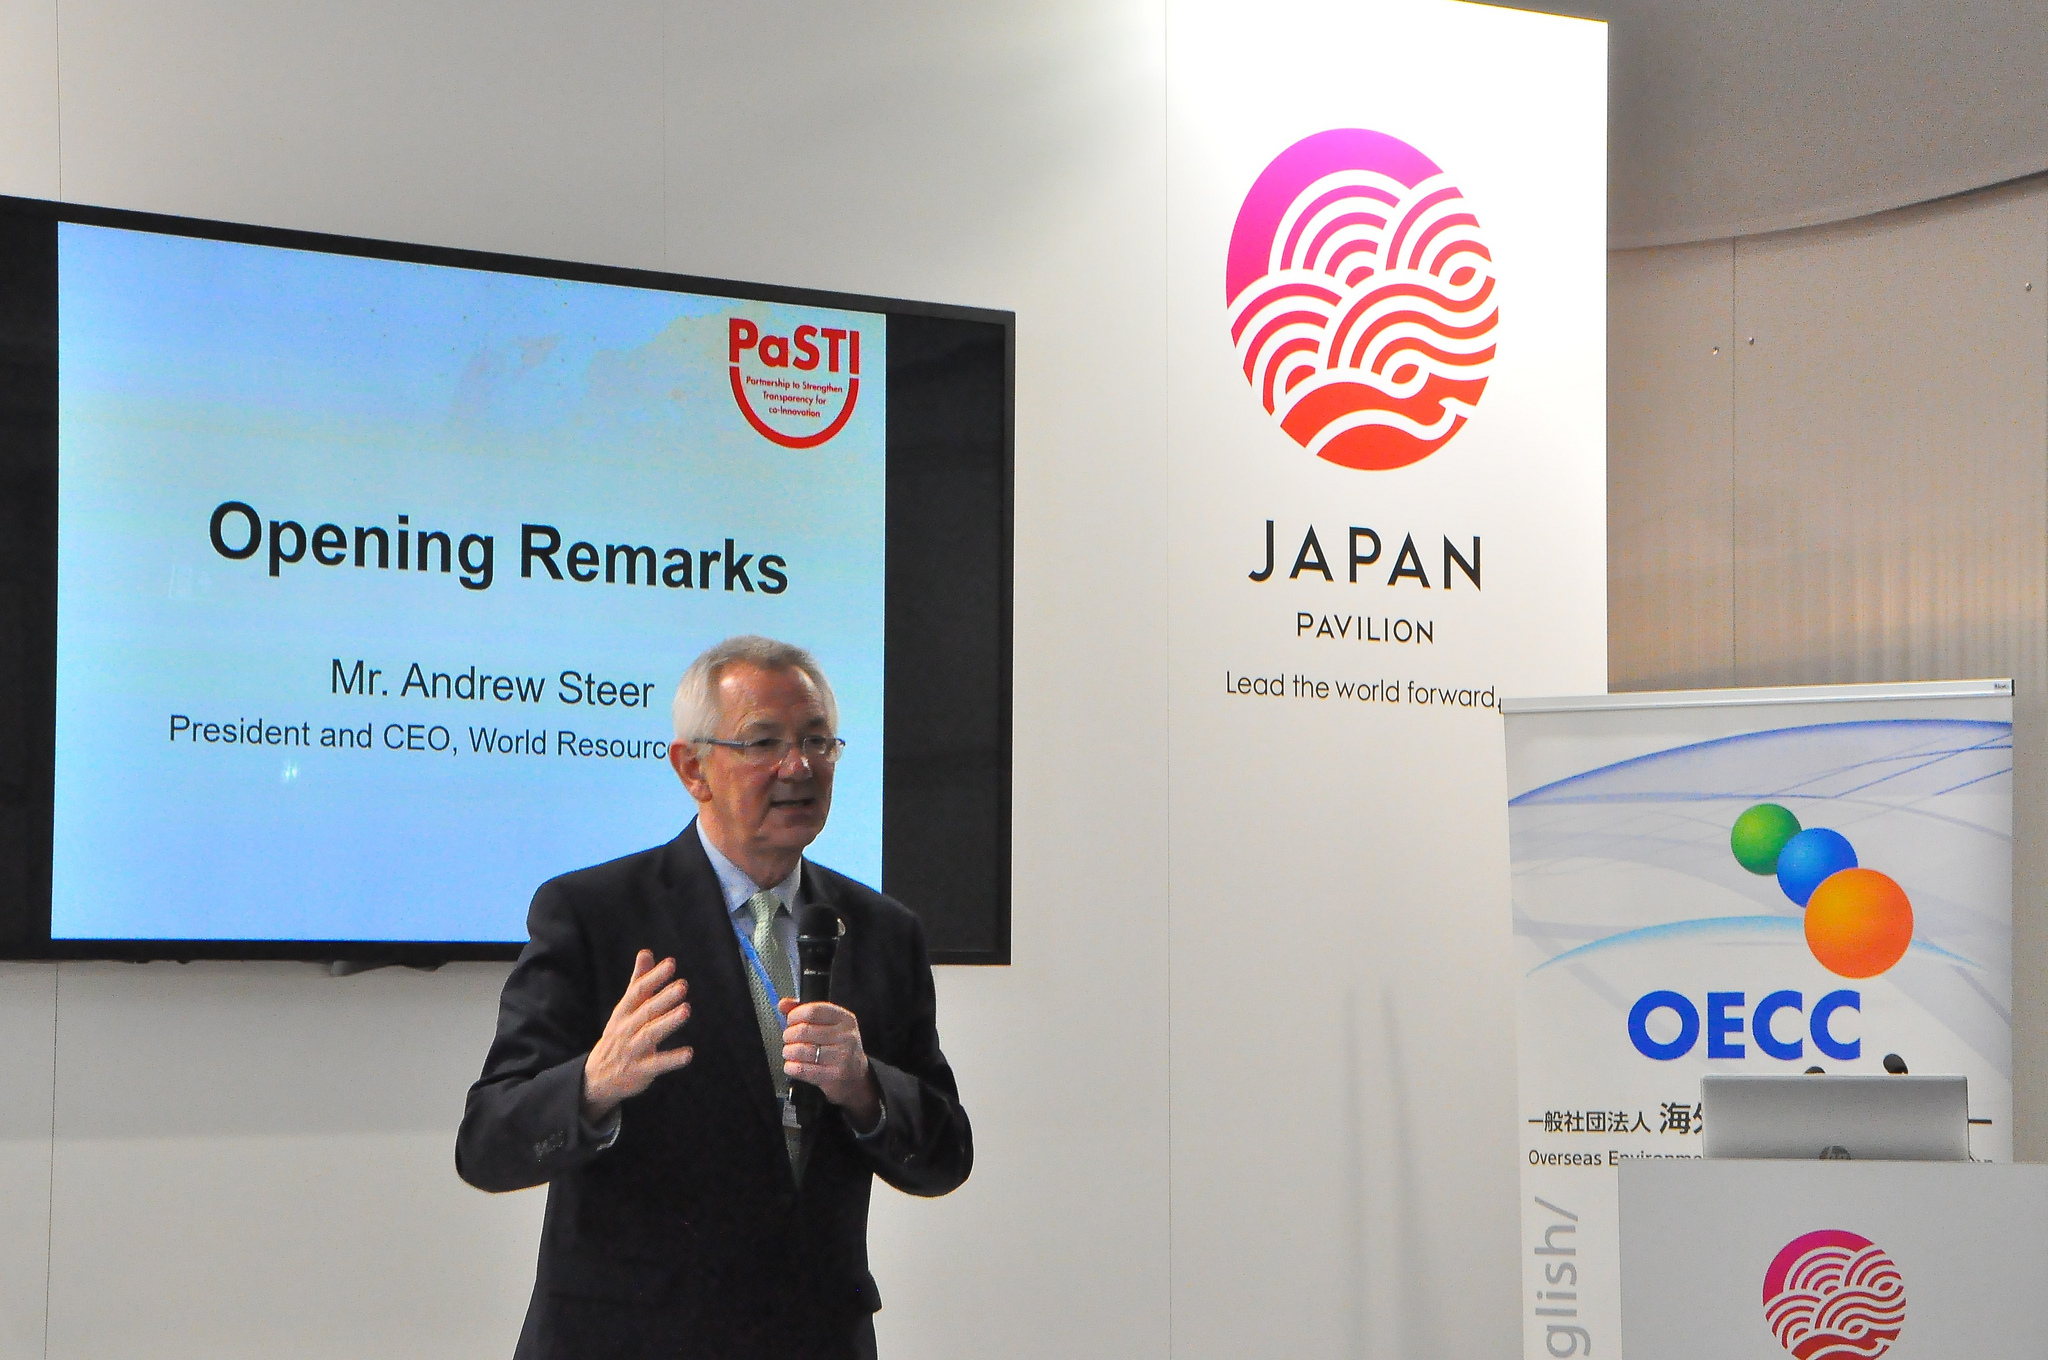 <p>Andrew Steer of World Resources Institute introduces Partnership to Strengthen Transparency for Co-Innovation (PaSTI) at COP24 in Katowice, Poland. Photo credit: COP24 Japan Pavillion/Flickr</p>